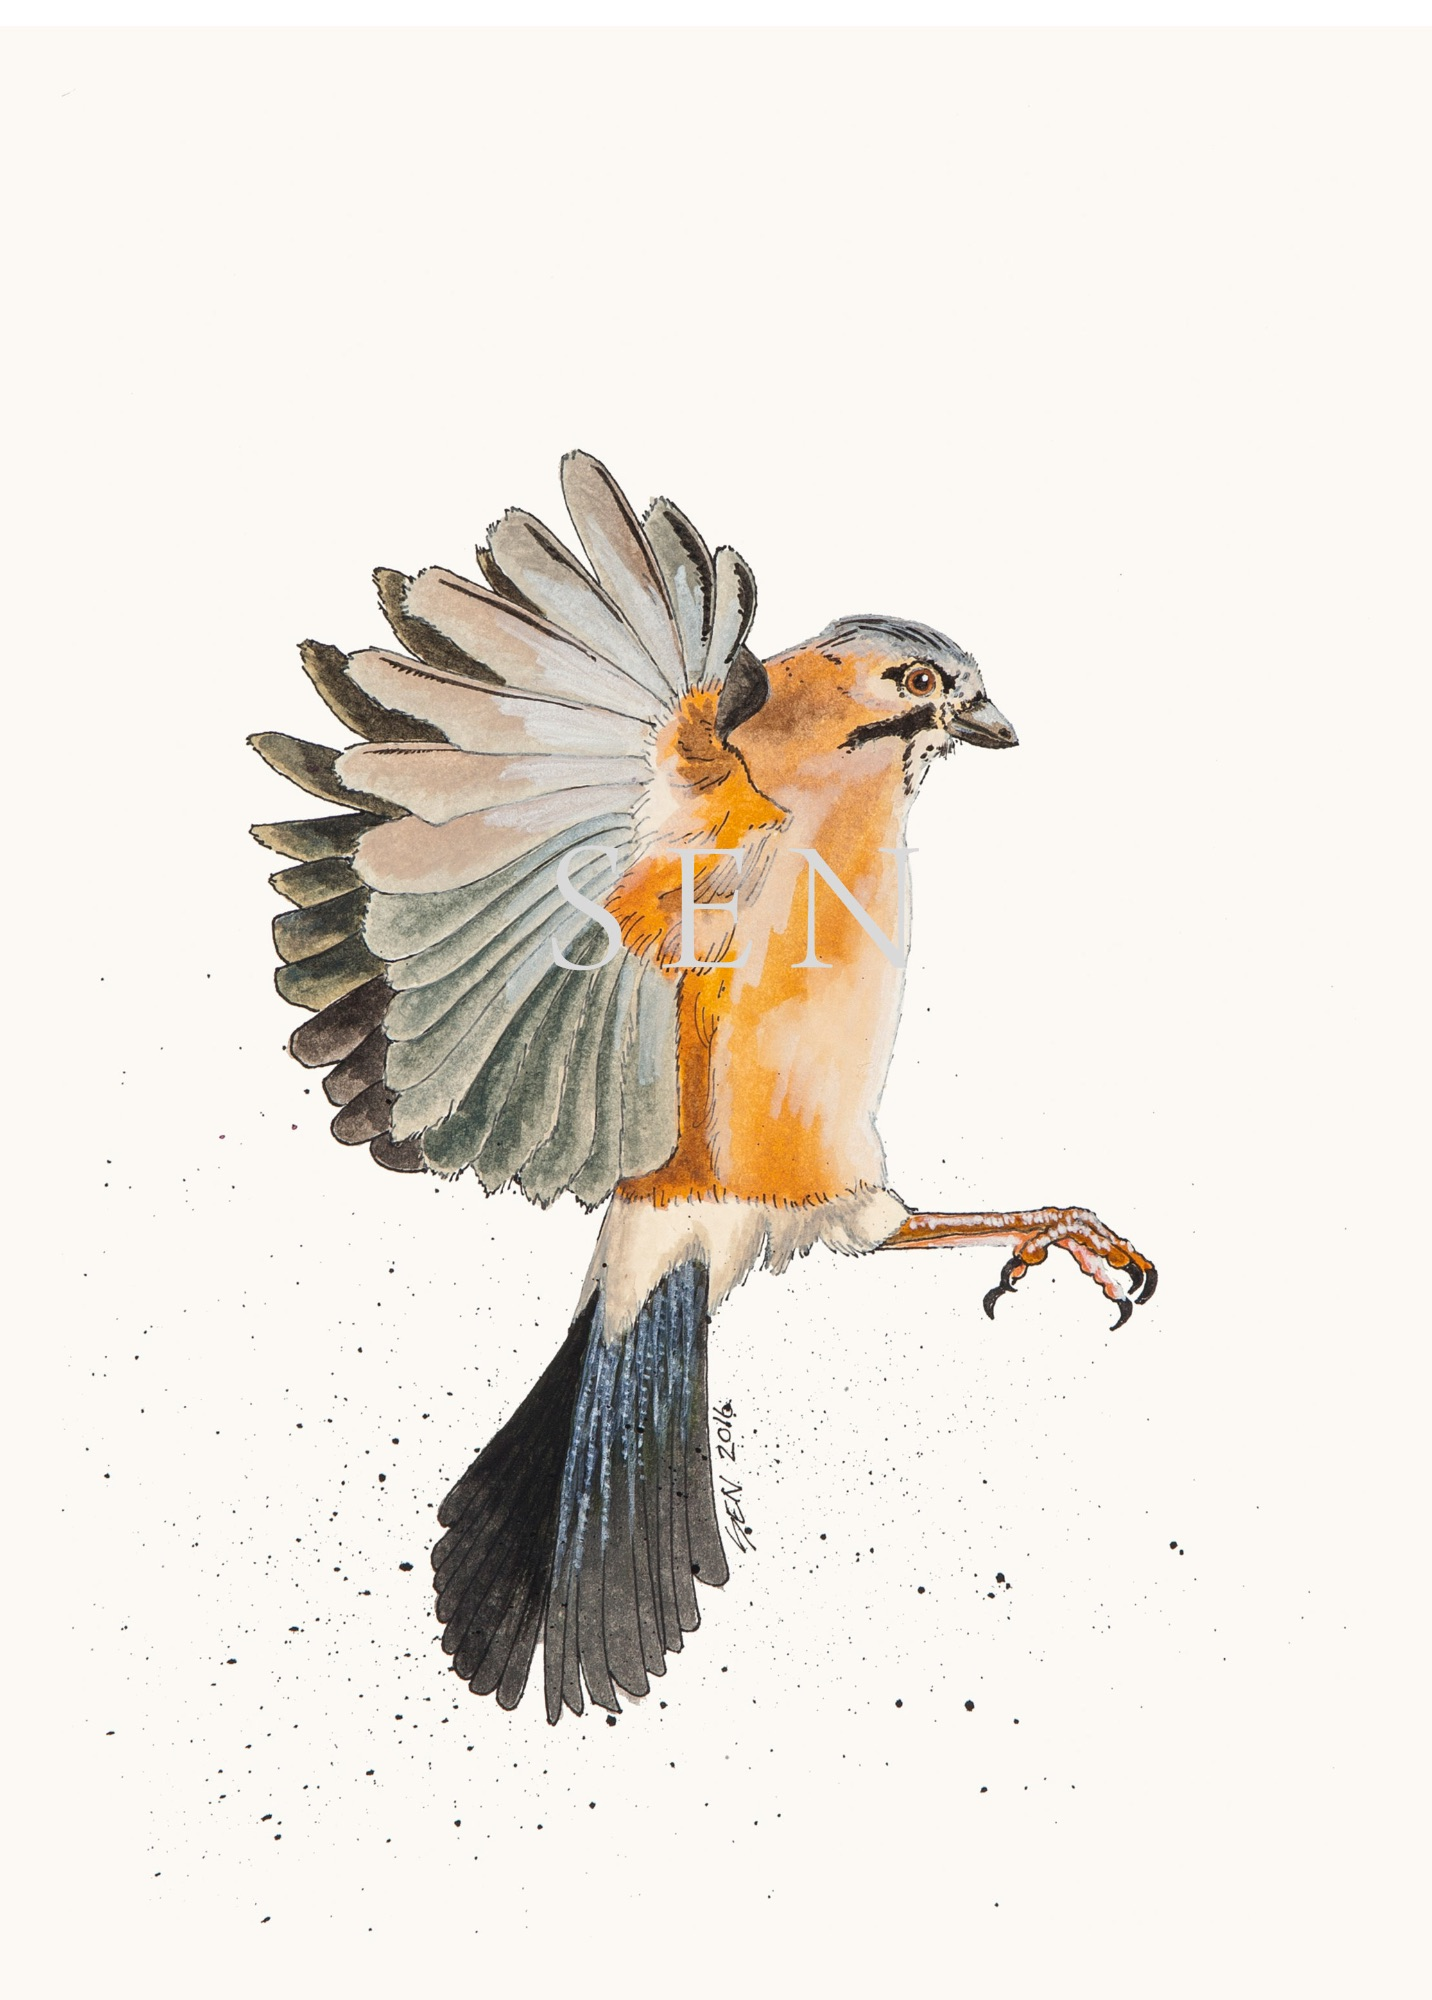 Jay bird painting